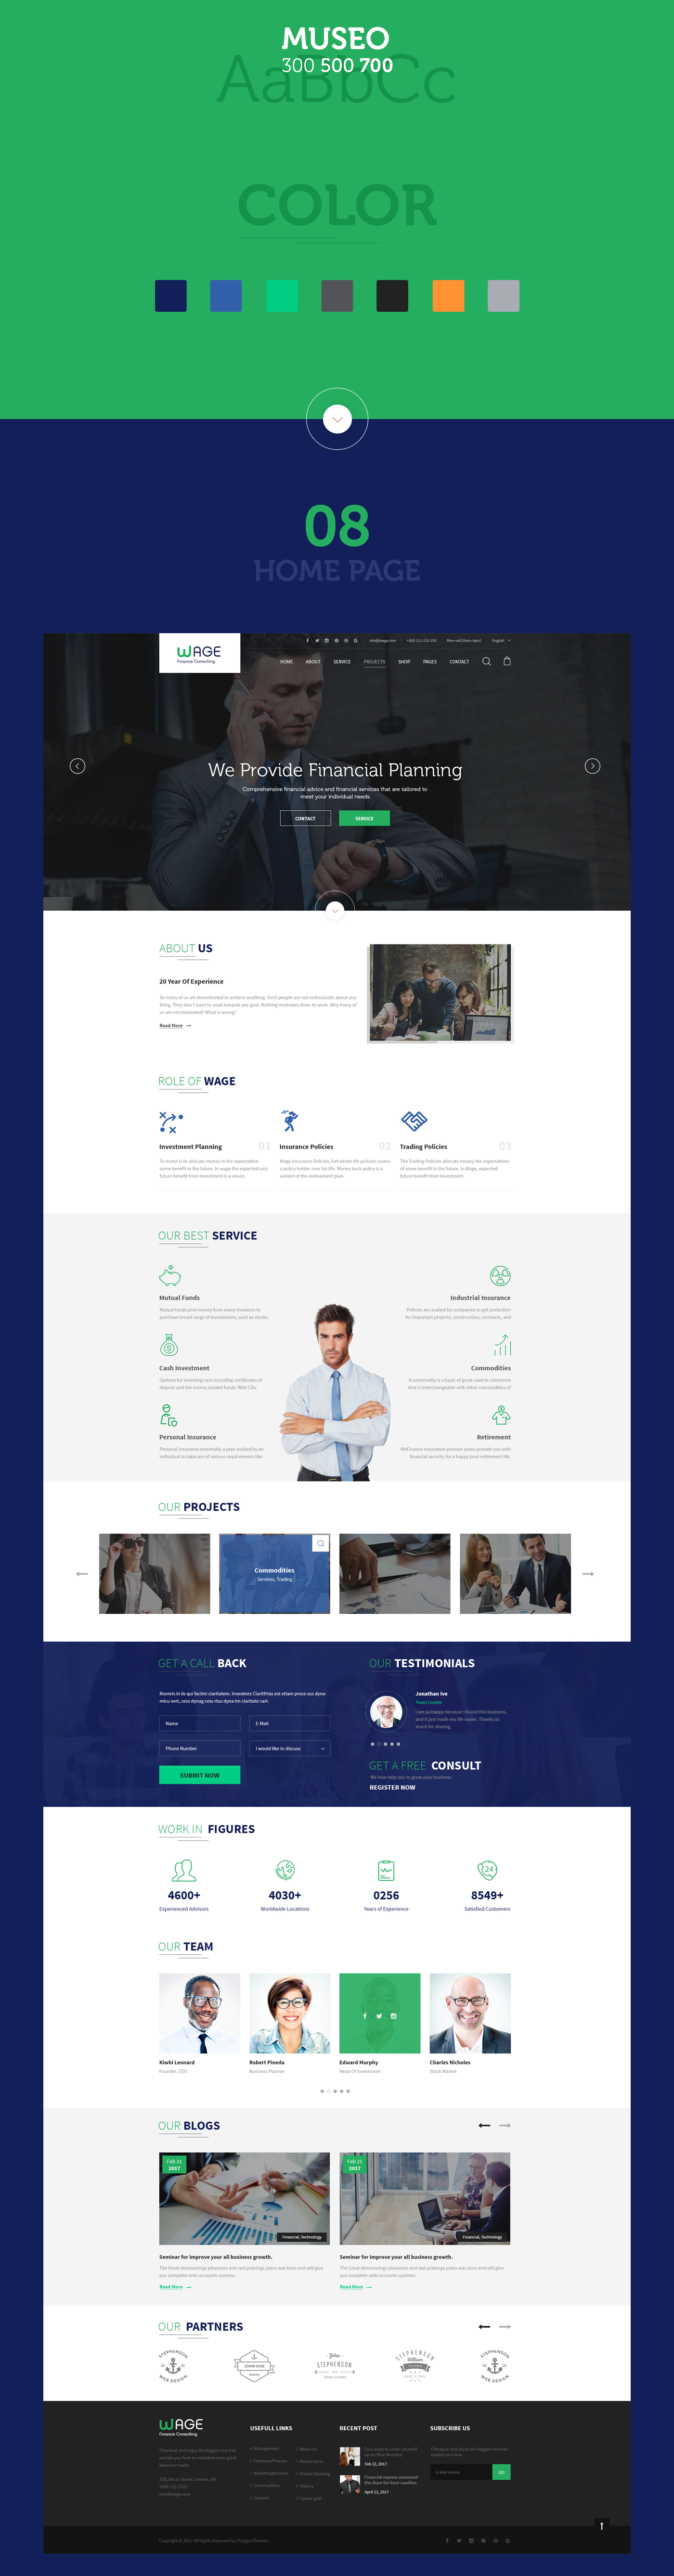 Wage - Business and Finance WordPress Theme - 11